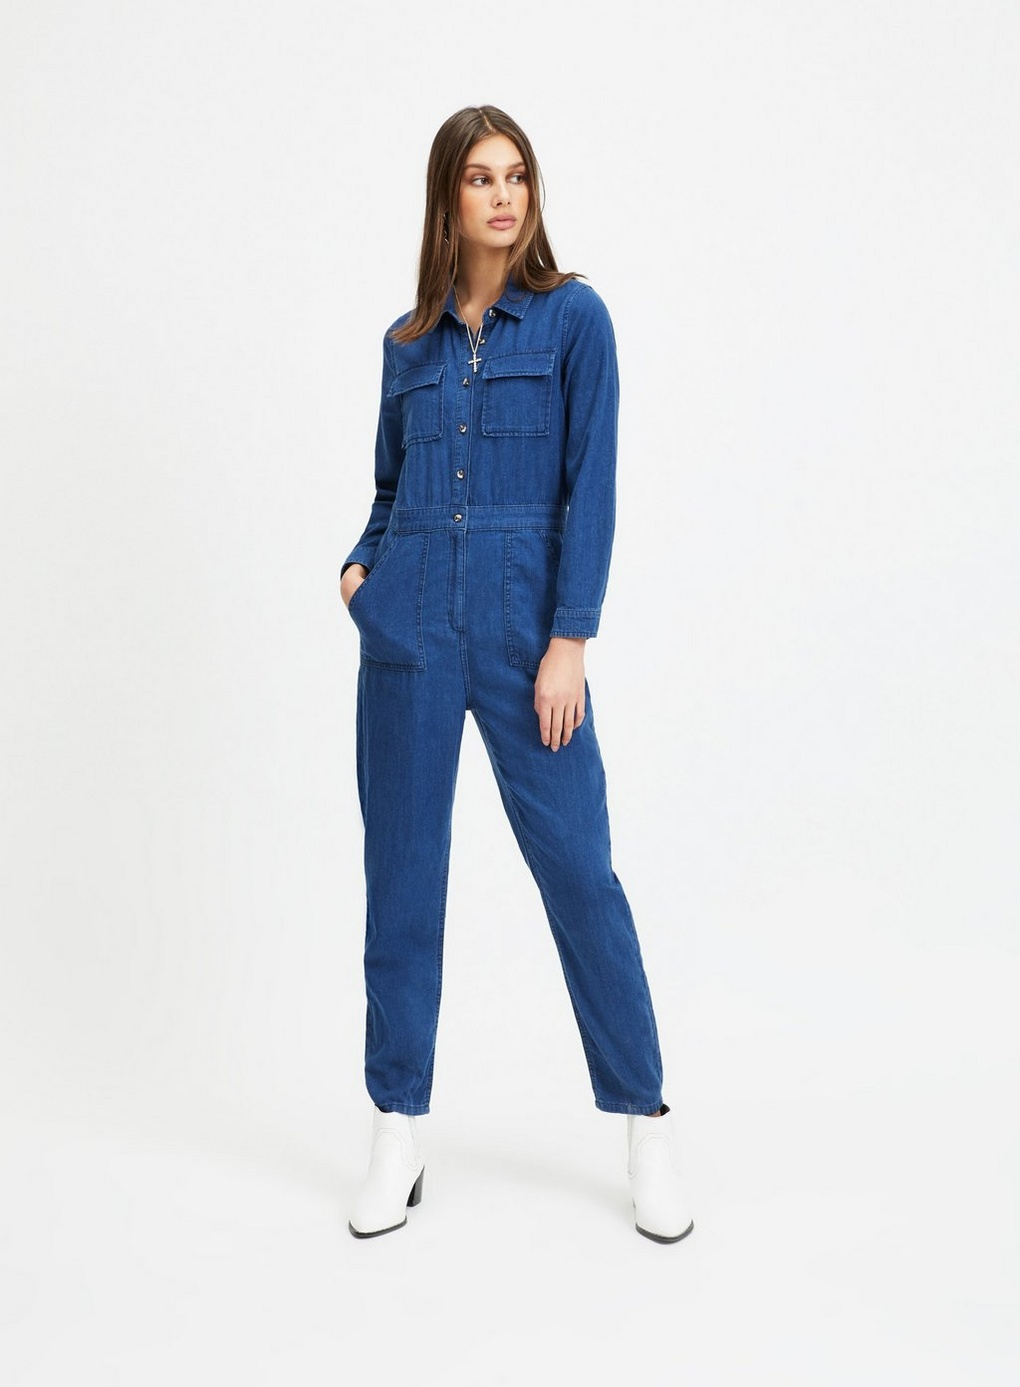 Miss Selfridge Denim Utility Boiler Suit - There's a lot of denim boiler suits on the market, but this one is one of my favourites for its cobalt blue wash and slim fit. Also, the styling here with the white boots is just * chef's kiss *£39, available at Miss Selfridge